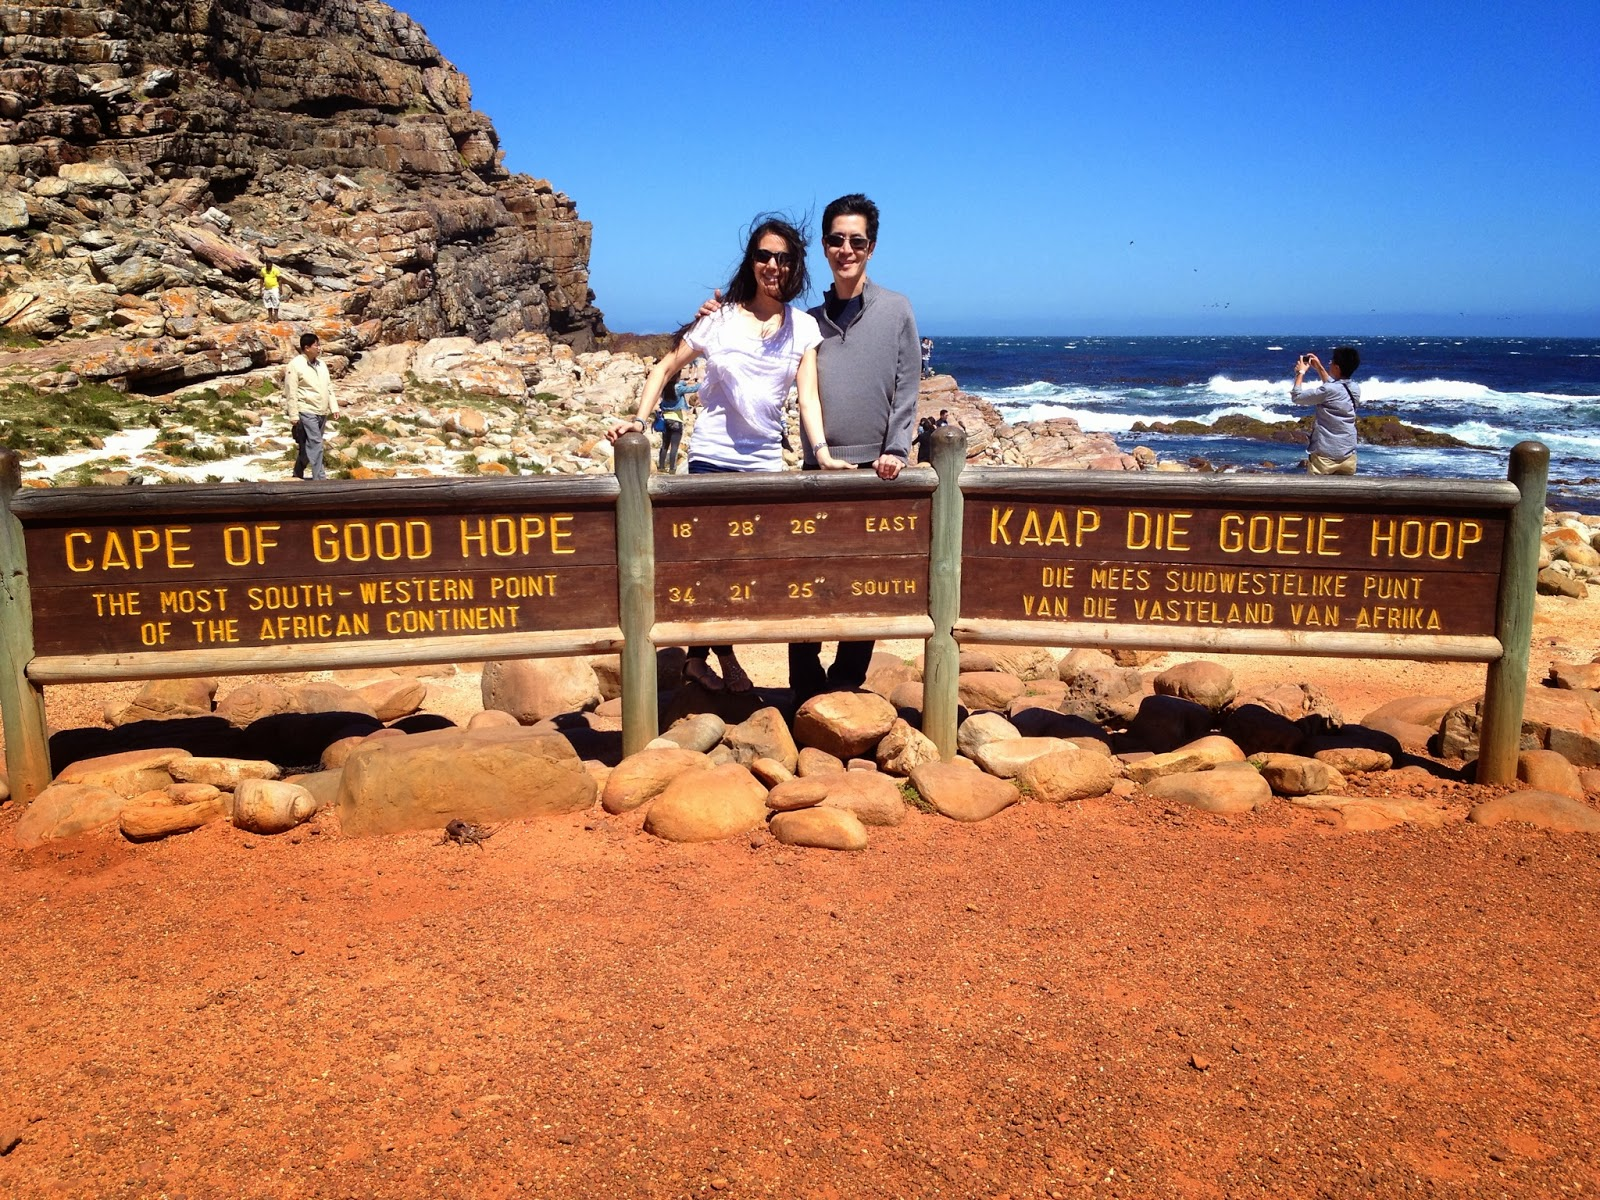 Cape Point Tour - Cape of Good Hope